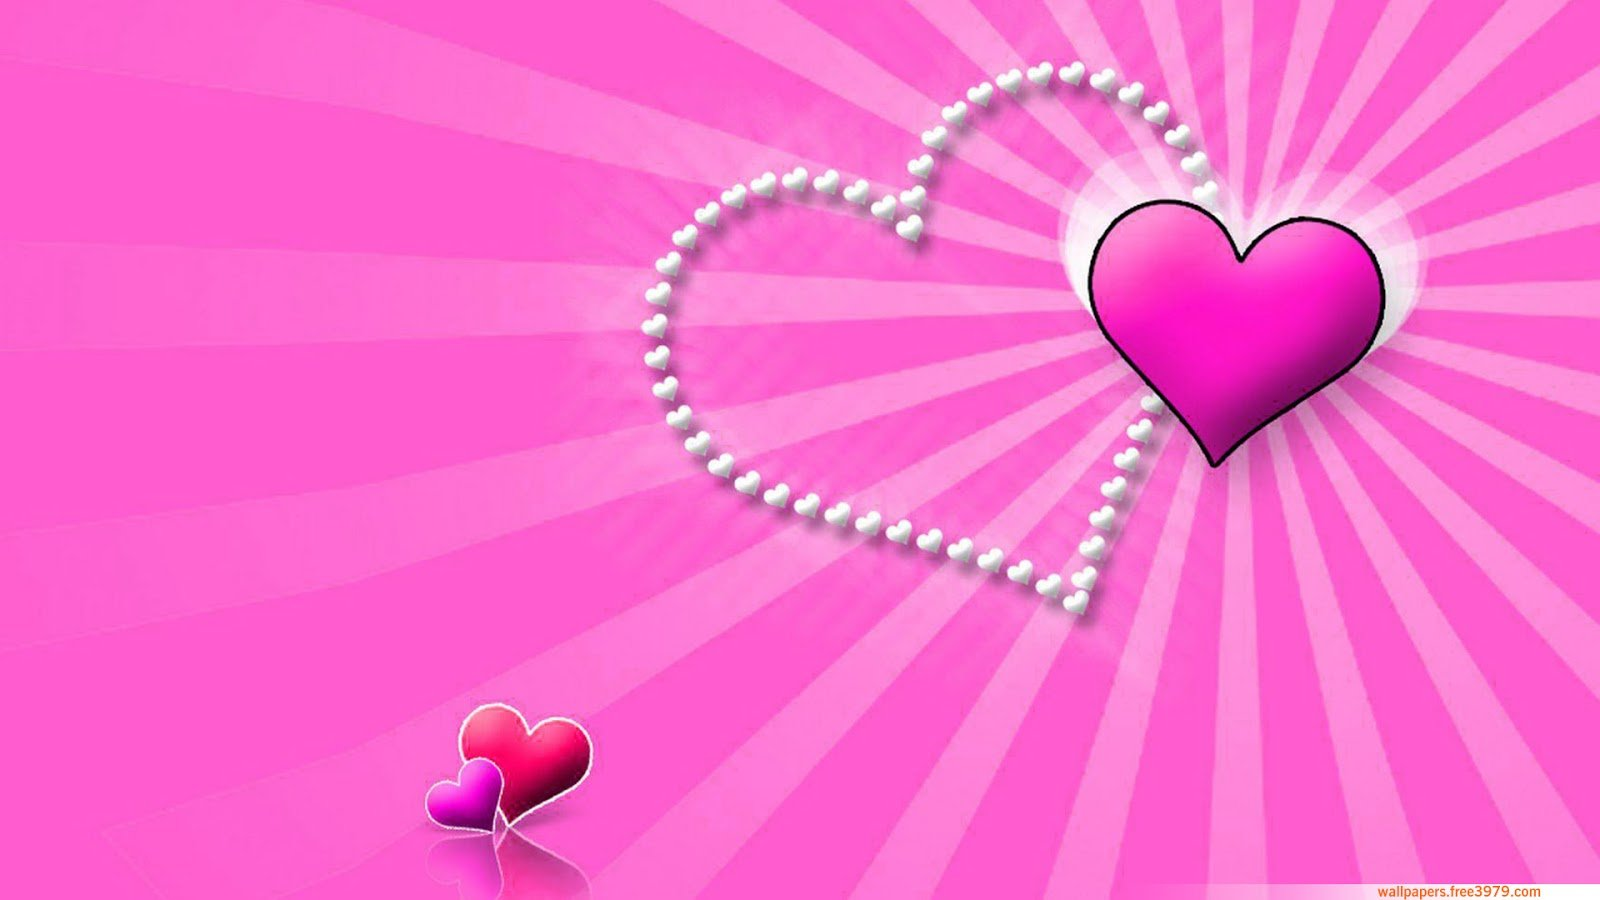 Valentine free screensavers wallpaper wallpapersafari - Background for valentine pictures ...